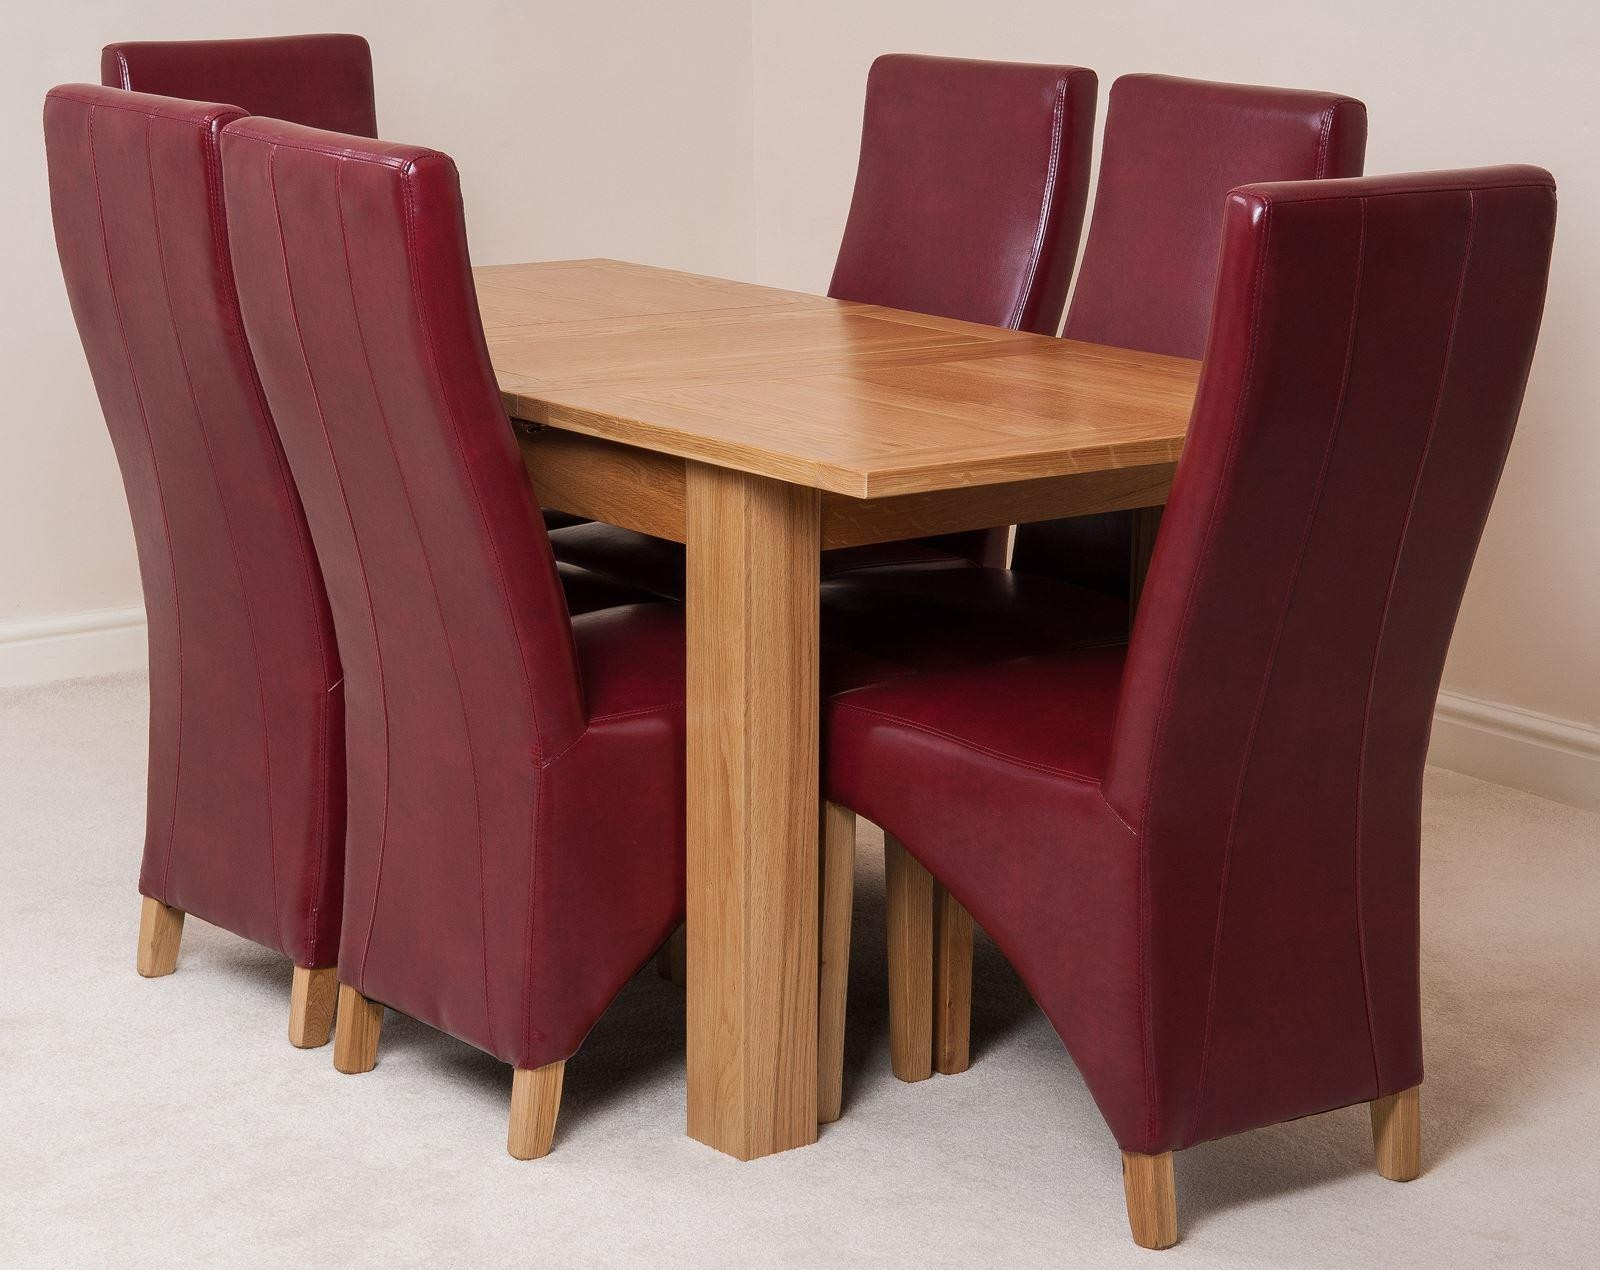 Hampton Solid Oak 120-160cm Extending Dining Table with 6 Lola Dining Chairs [Burgundy Leather]